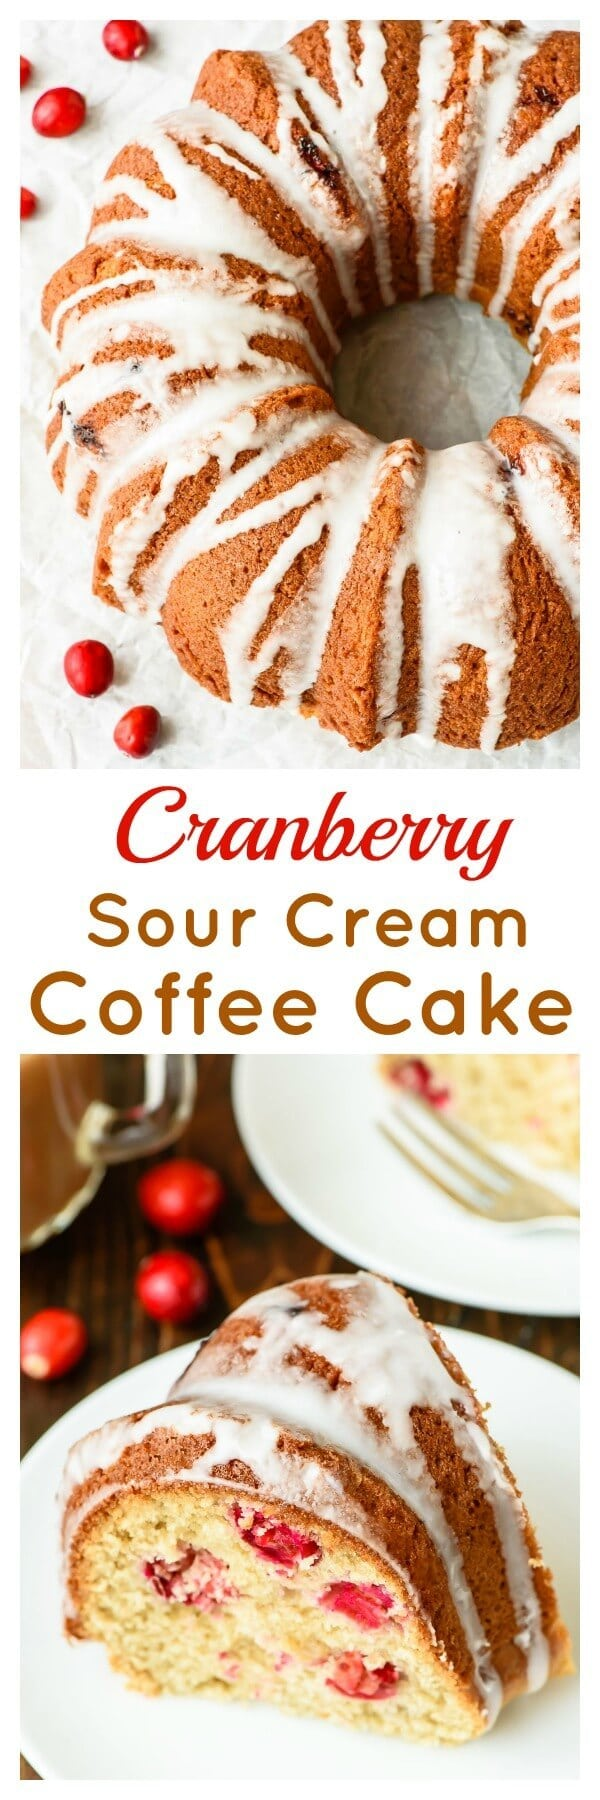 This Cranberry Sour Cream Coffee Cake is perfect for a holiday brunch or Christmas morning breakfast. It's gorgeous, EASY, and everyone will love it!